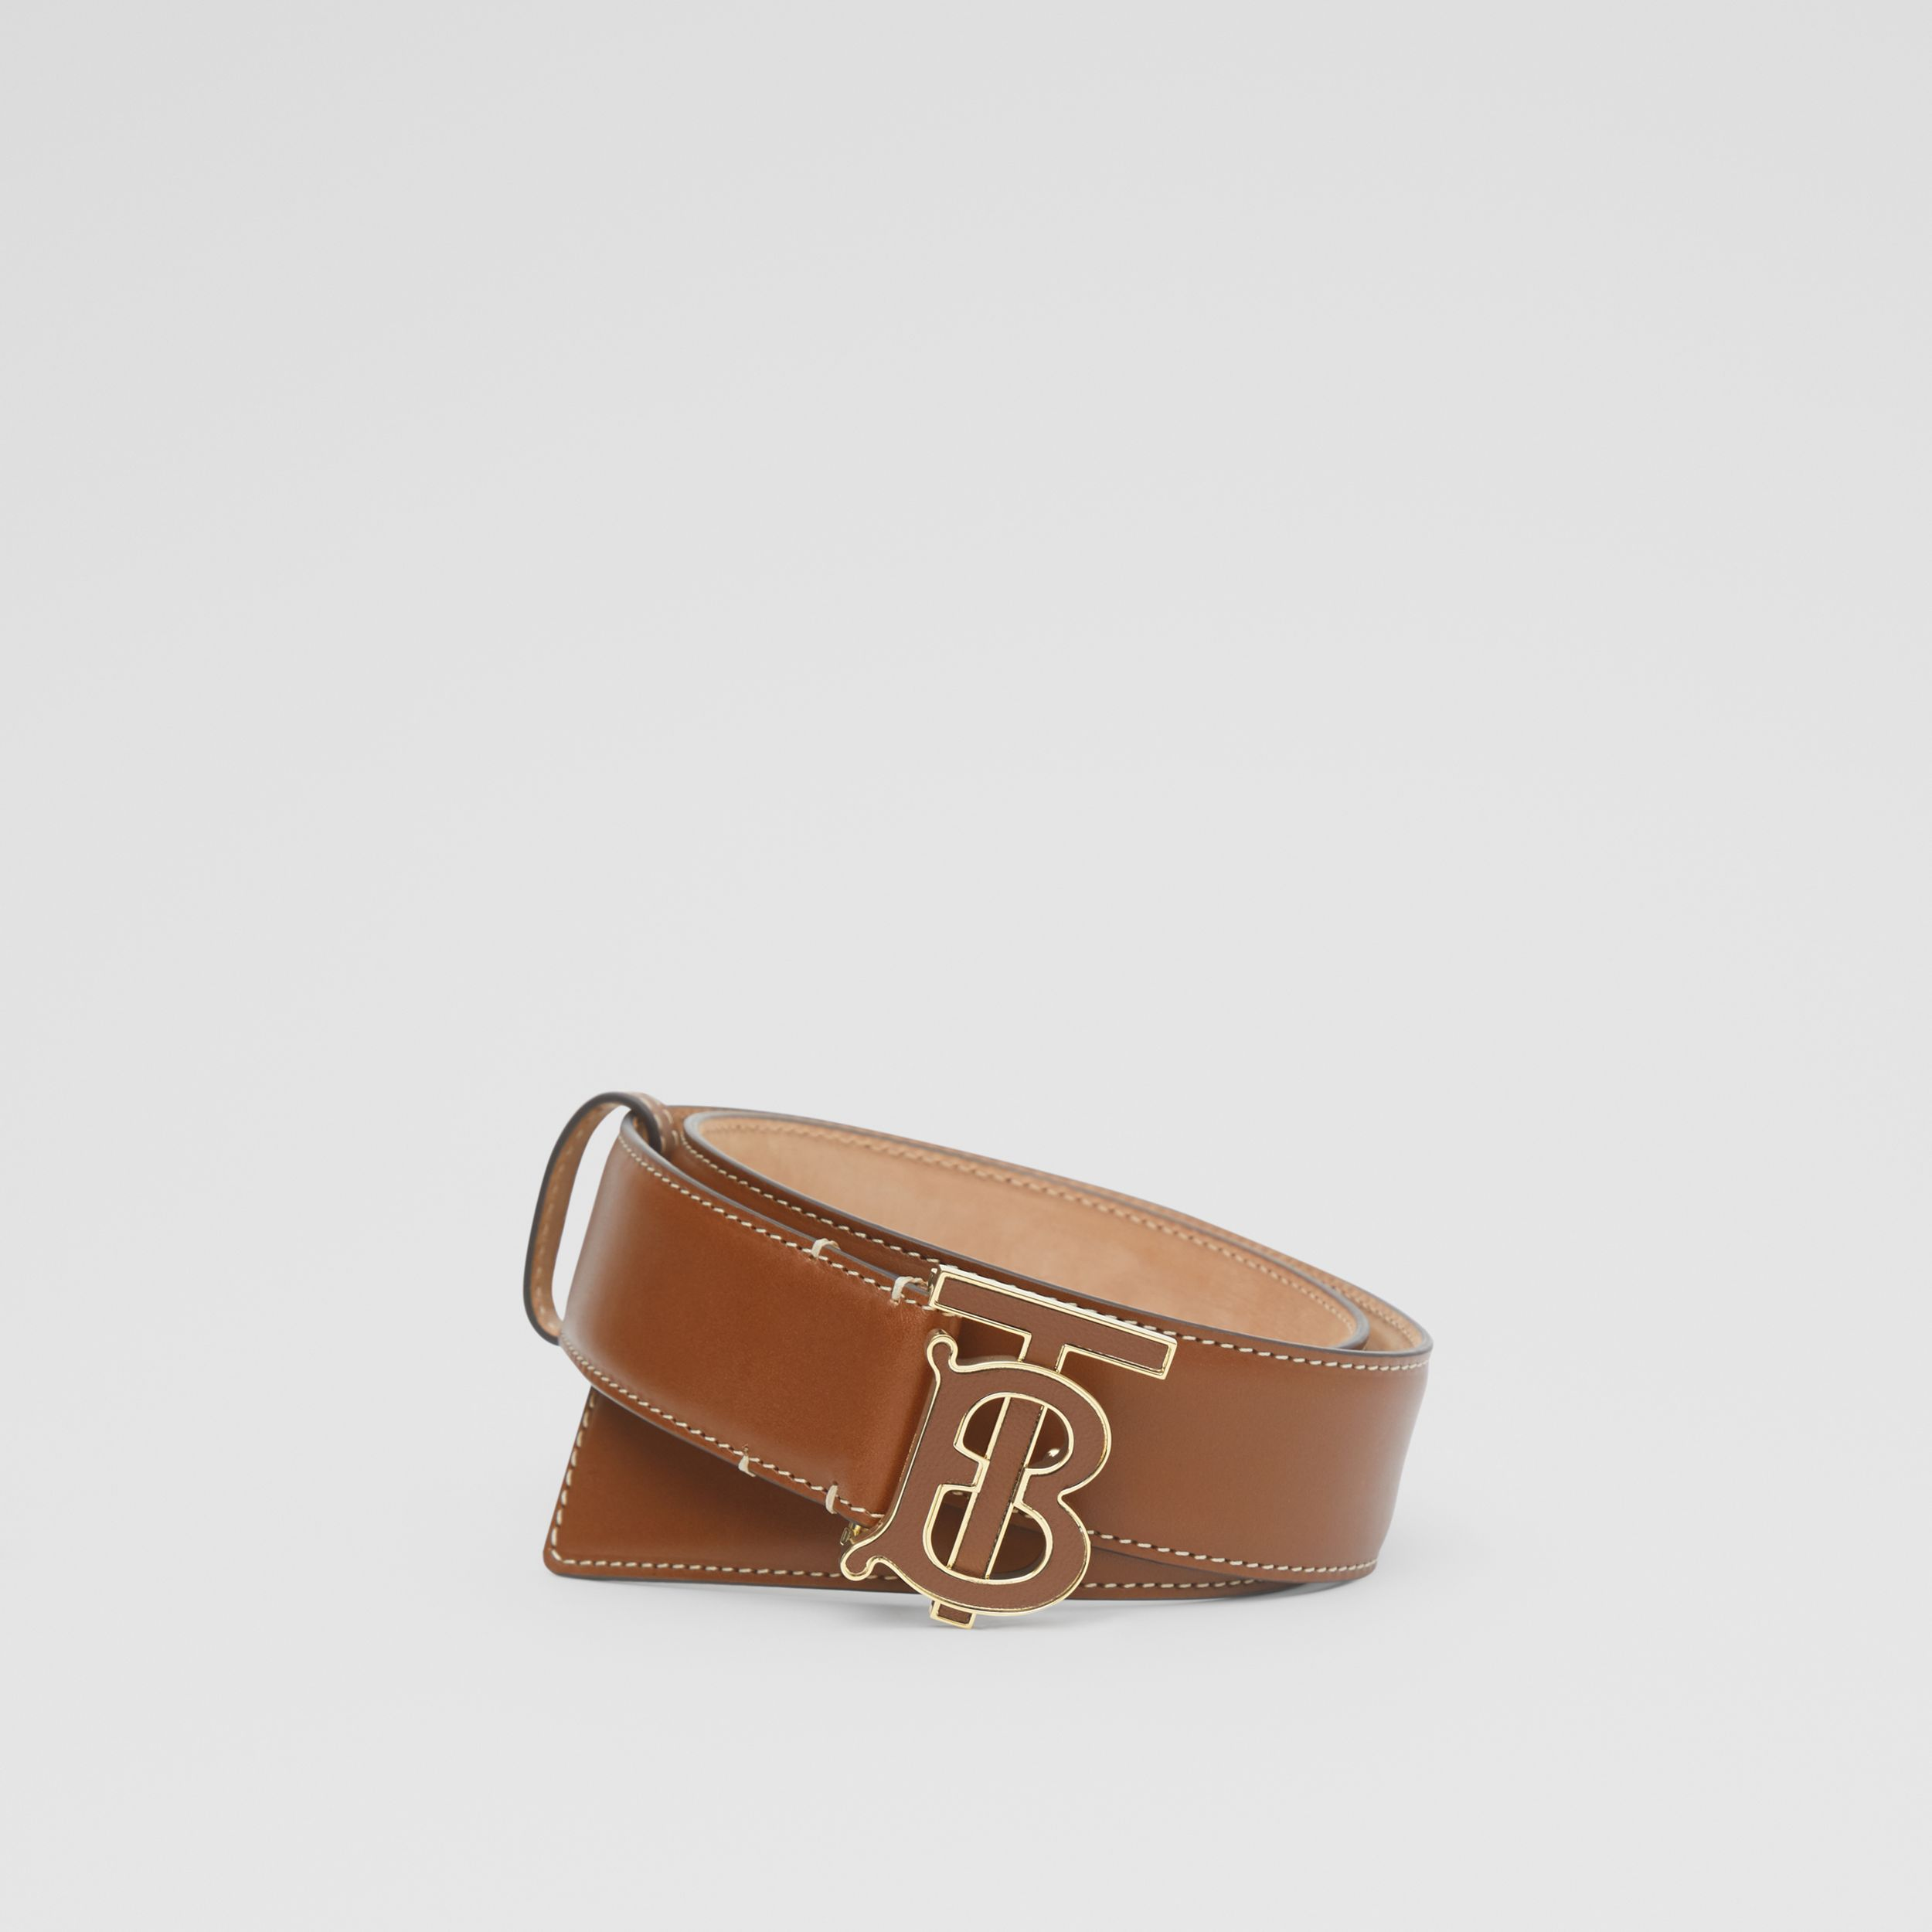 Monogram Motif Leather Belt in Tan | Burberry - 1